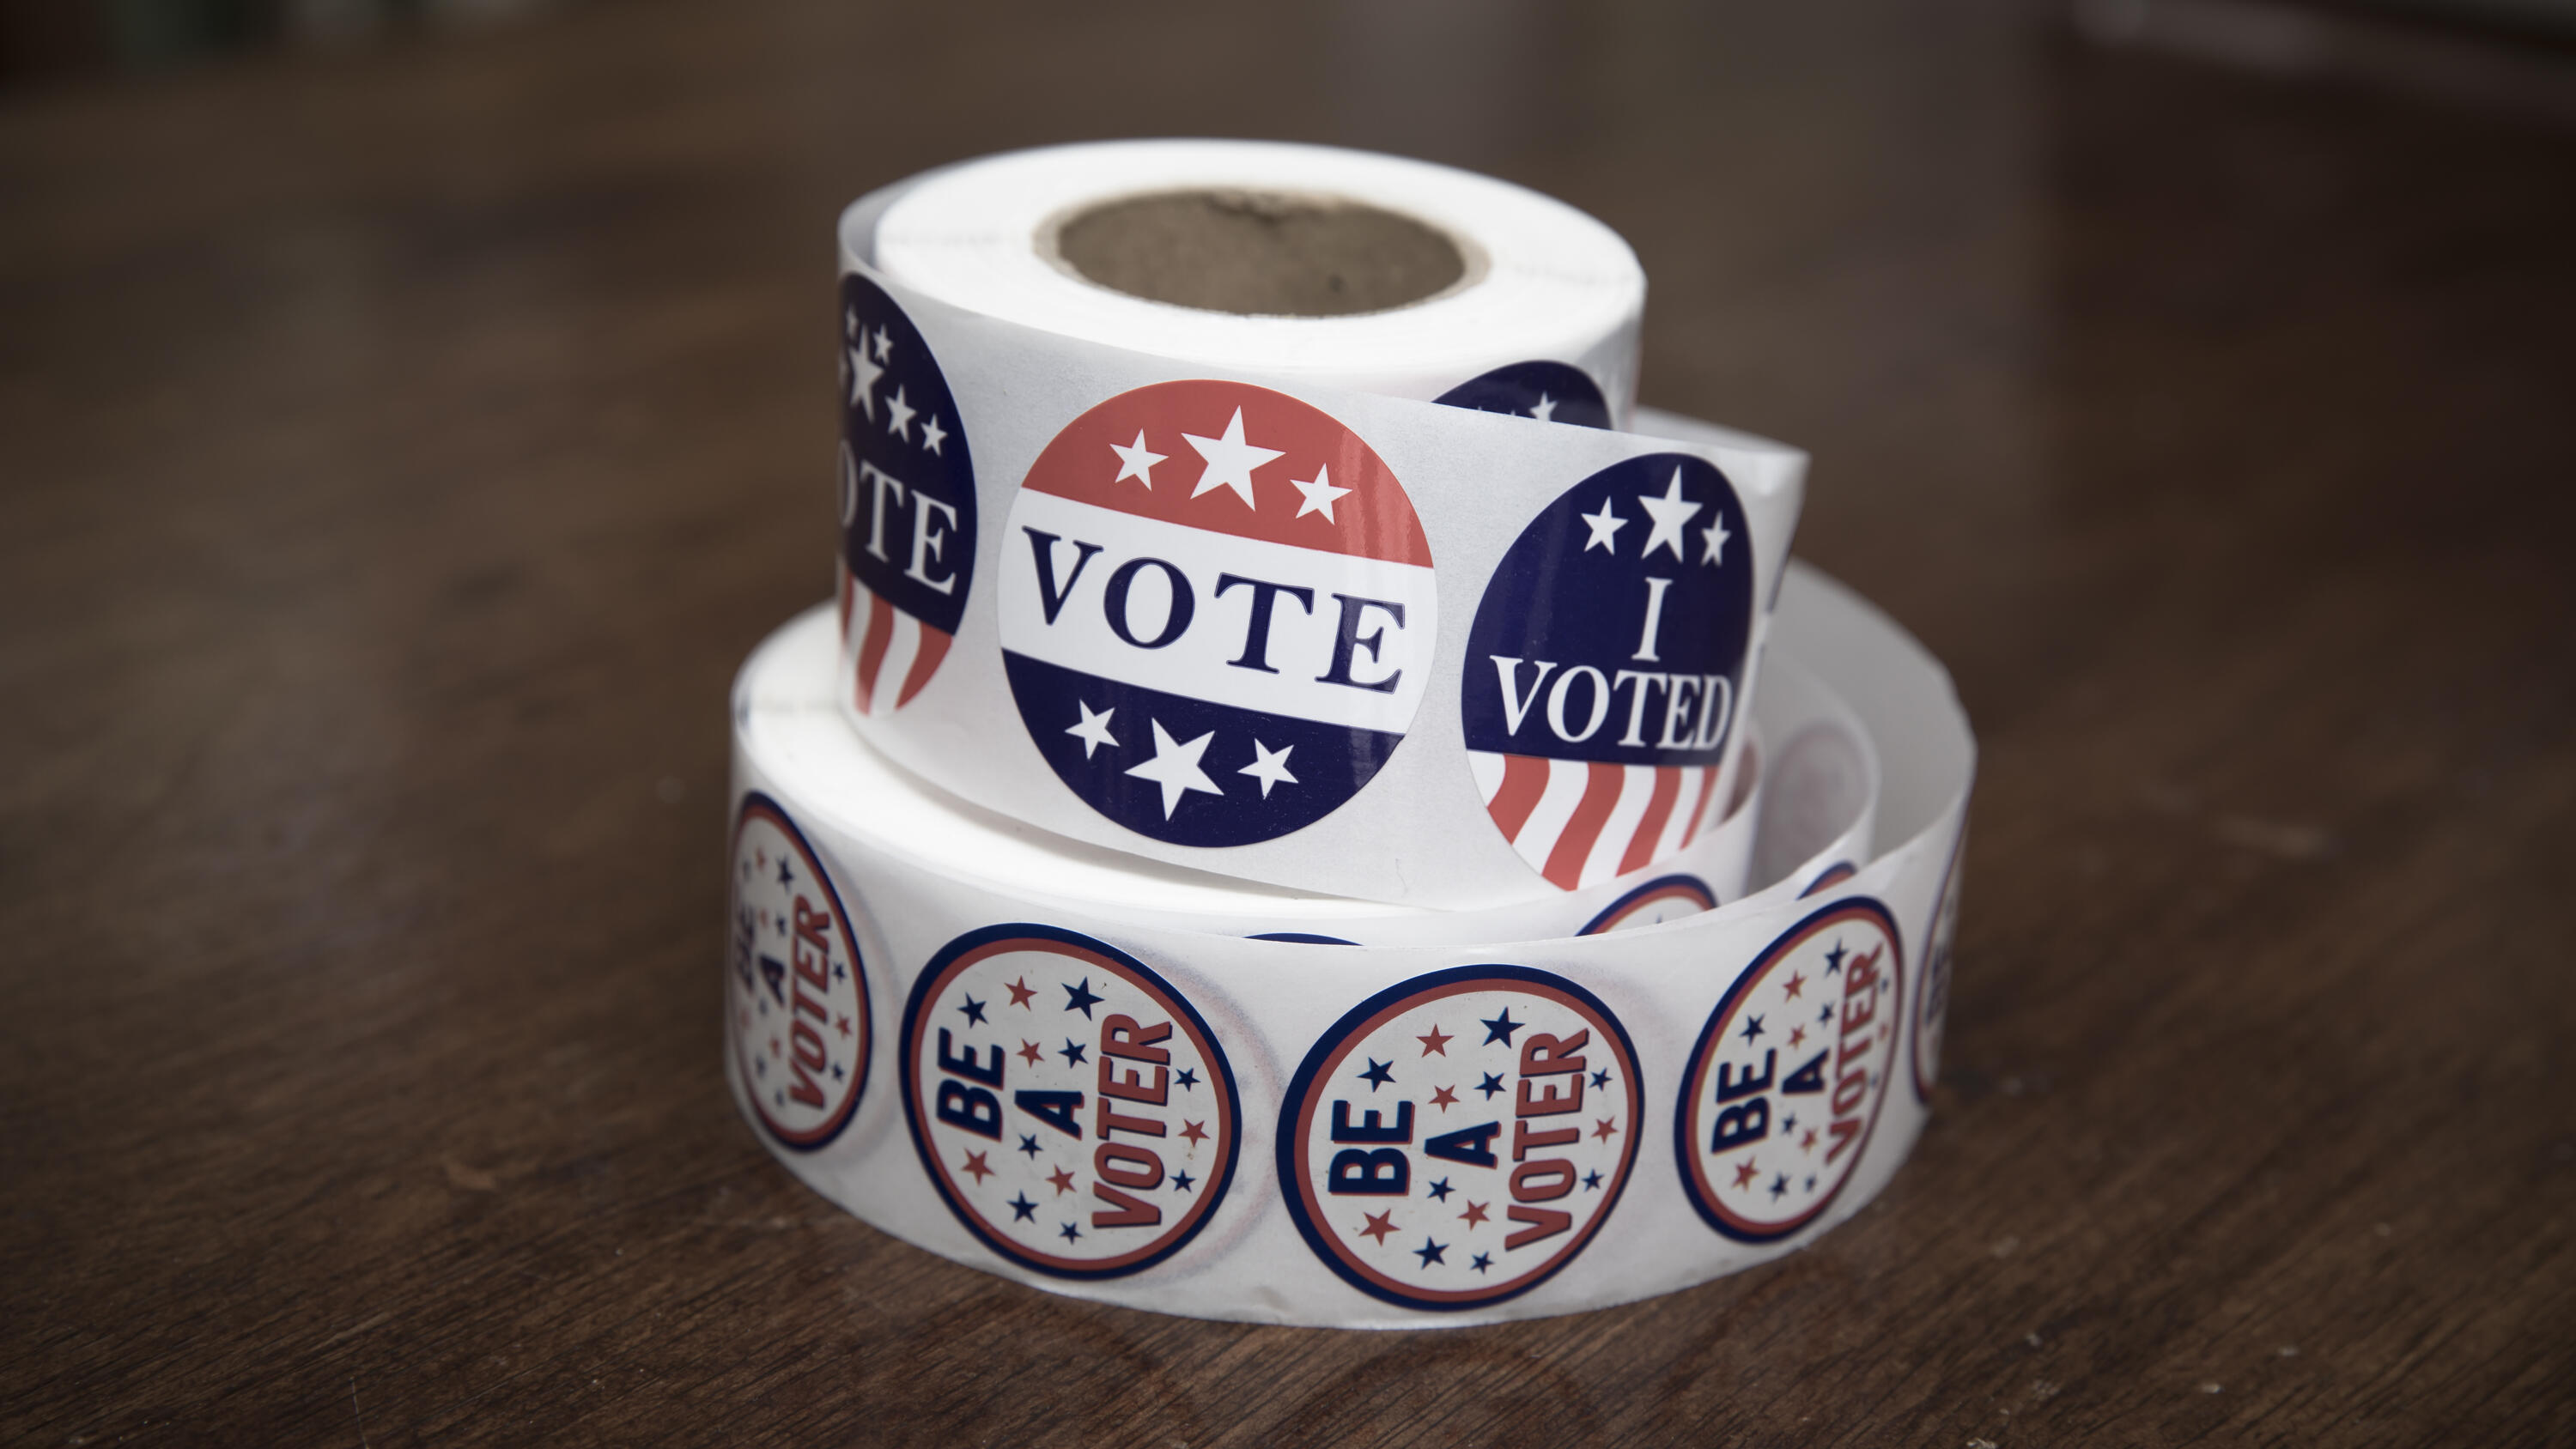 A roll of voting stickers